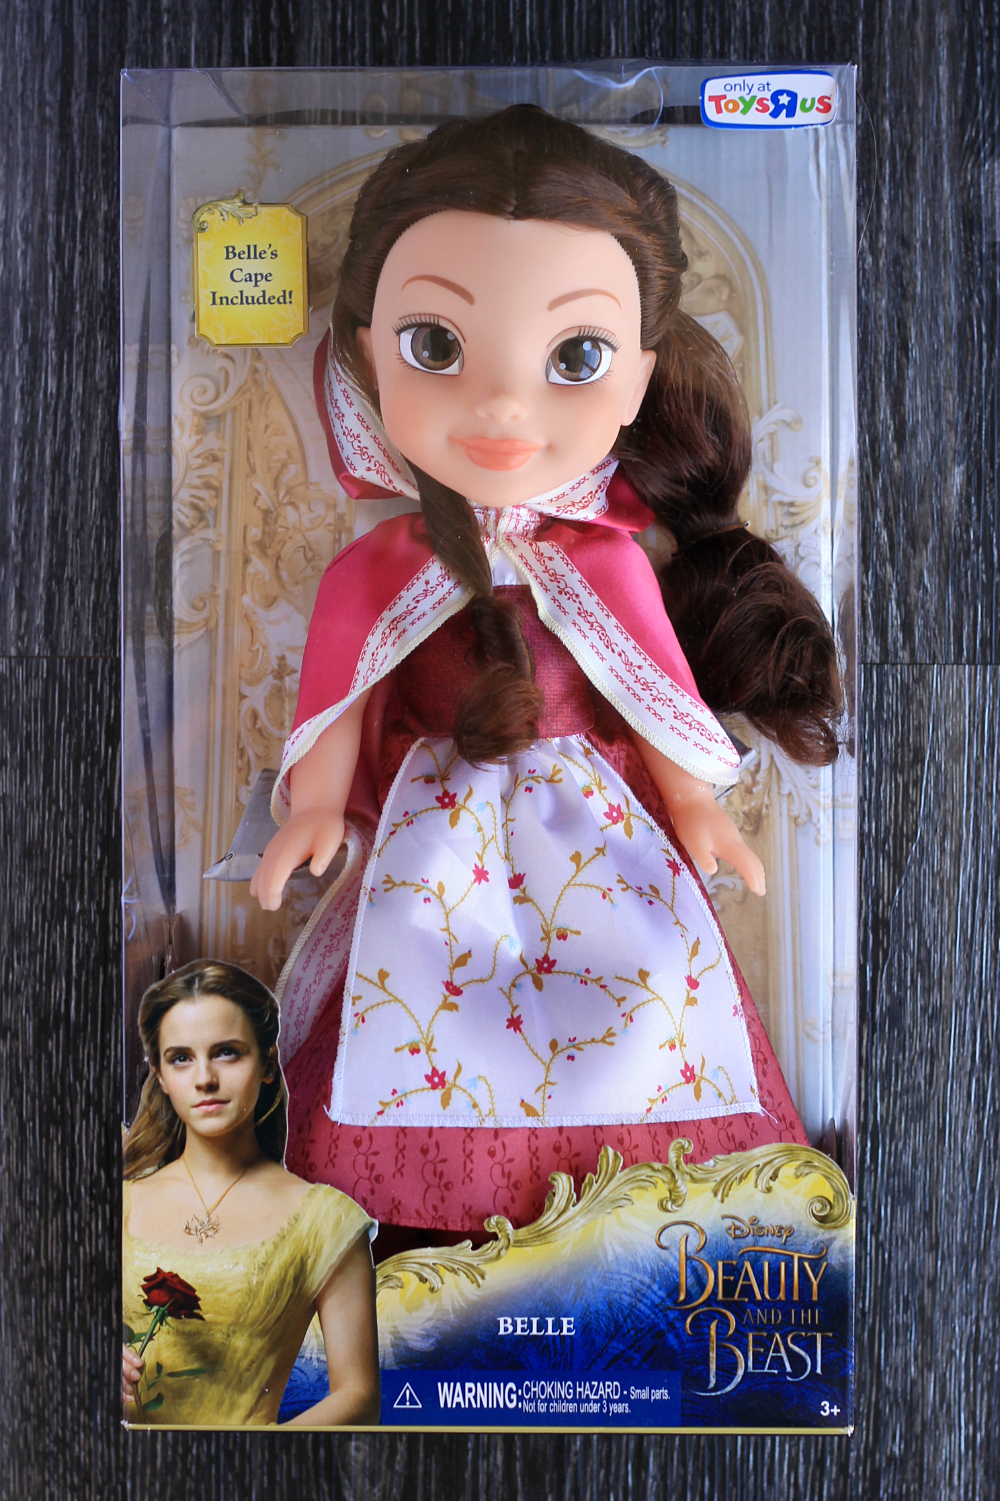 Disney's Beauty and the Beast Belle Red DressCape Doll